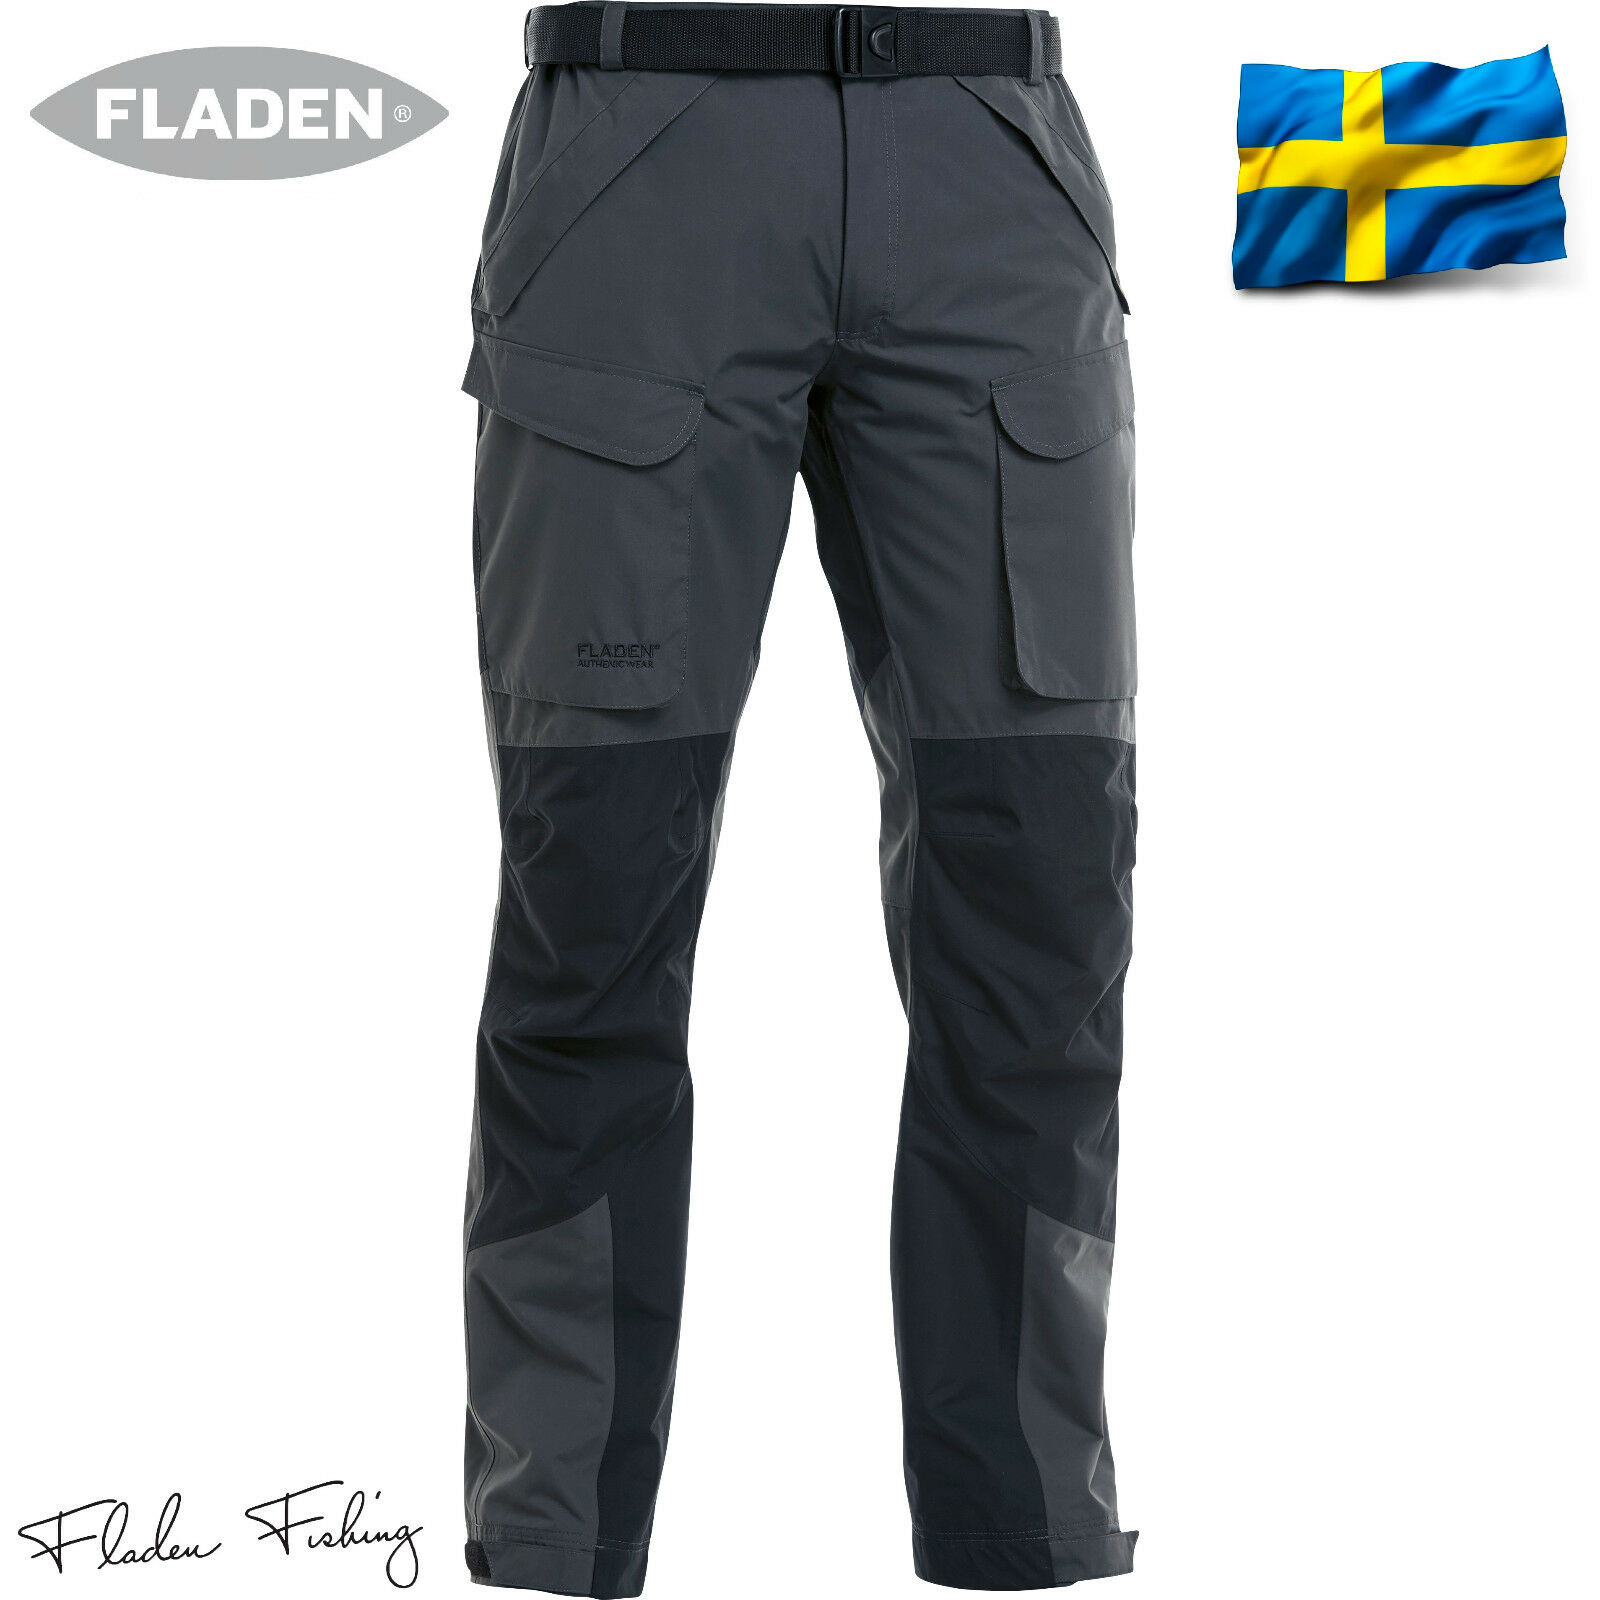 Fladen Authentic Allwetter Outdoor & Freizeit Hose Angelhose Angeln Wasserdicht